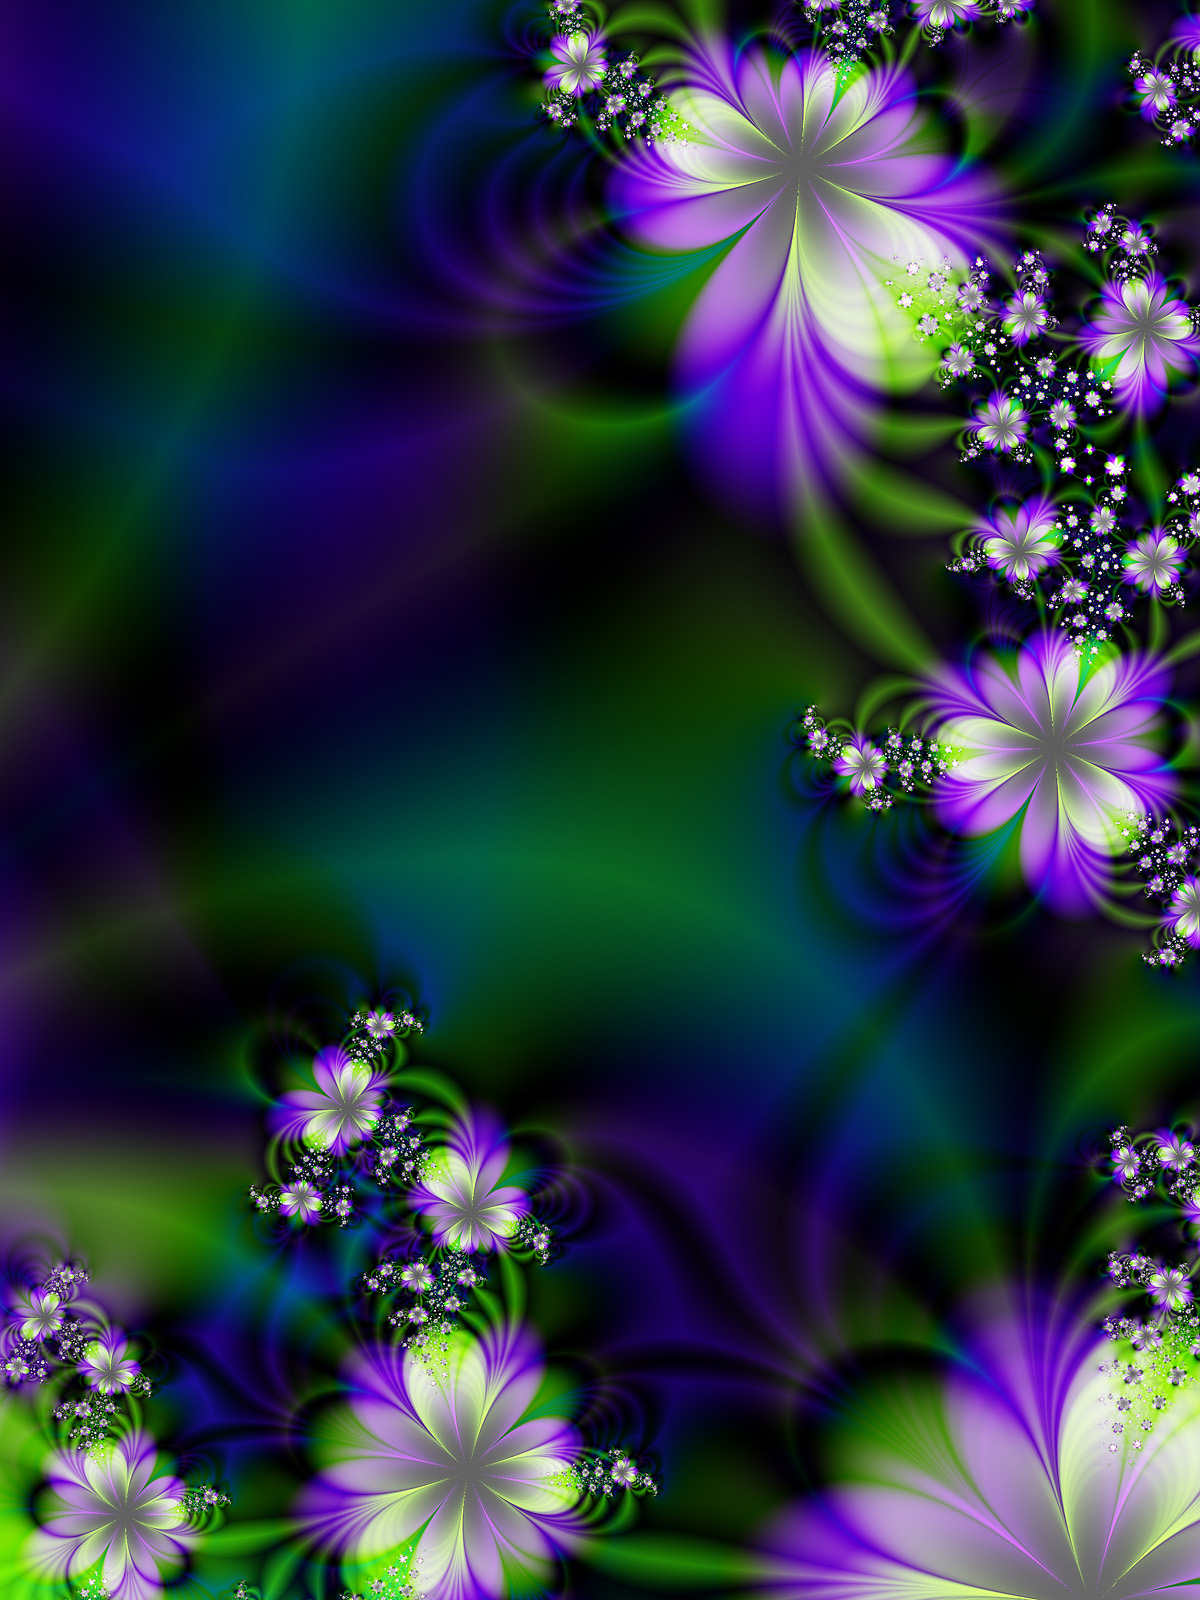 Ashutosh mukherjee beautiful background and frame for making photo - Floral background ...